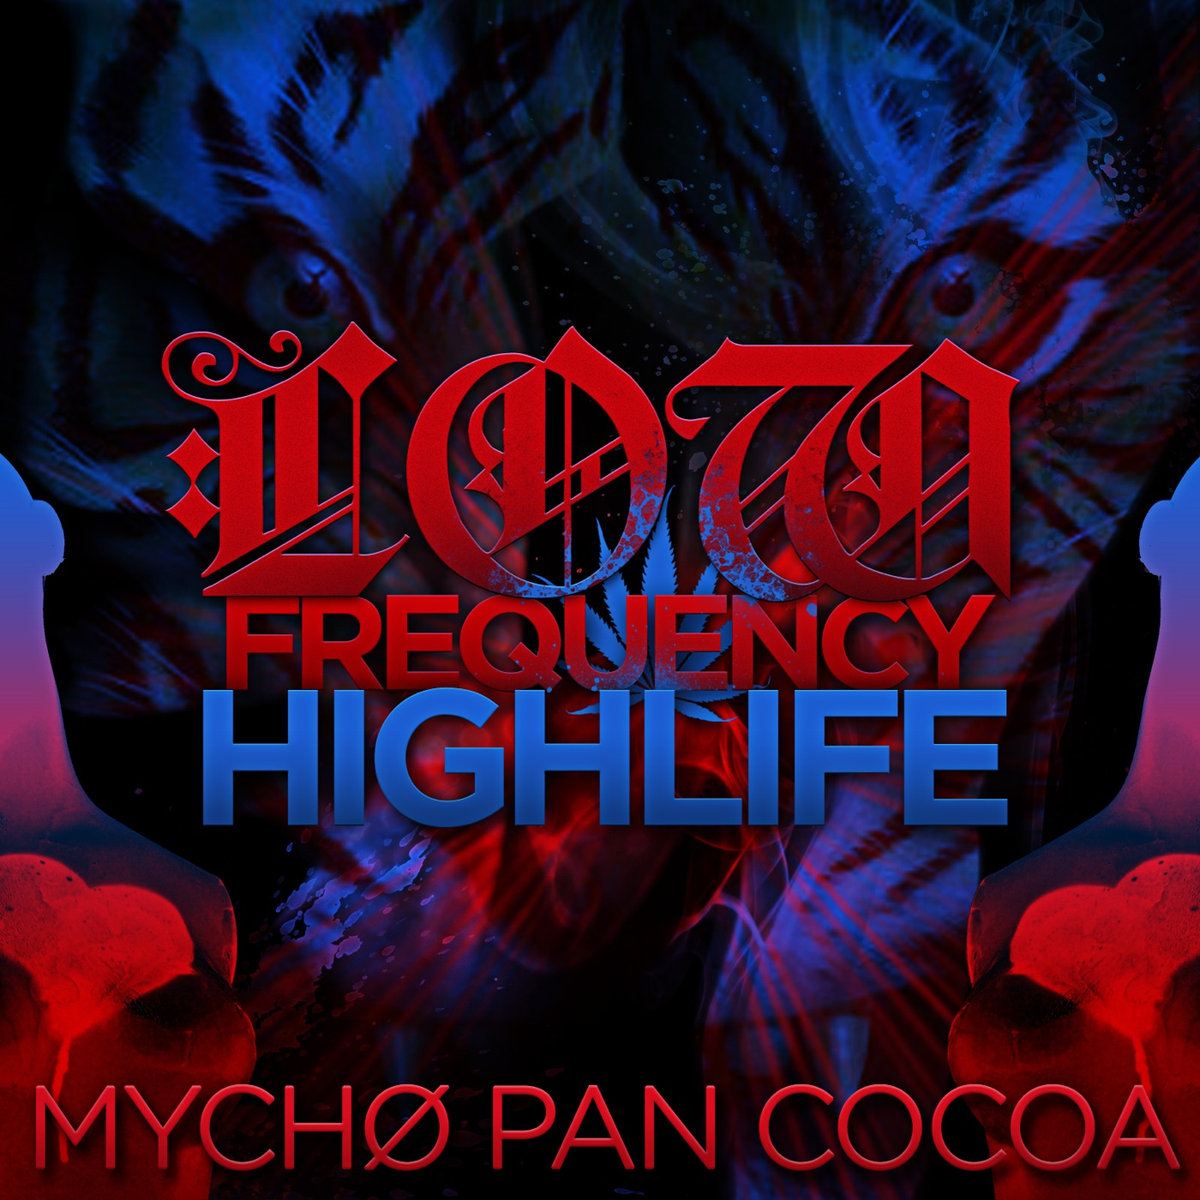 Mycho Pan Cocoa - Porto Mental (Spystep) @ 'Low Frequency High Life' album (electronic, dubstep)